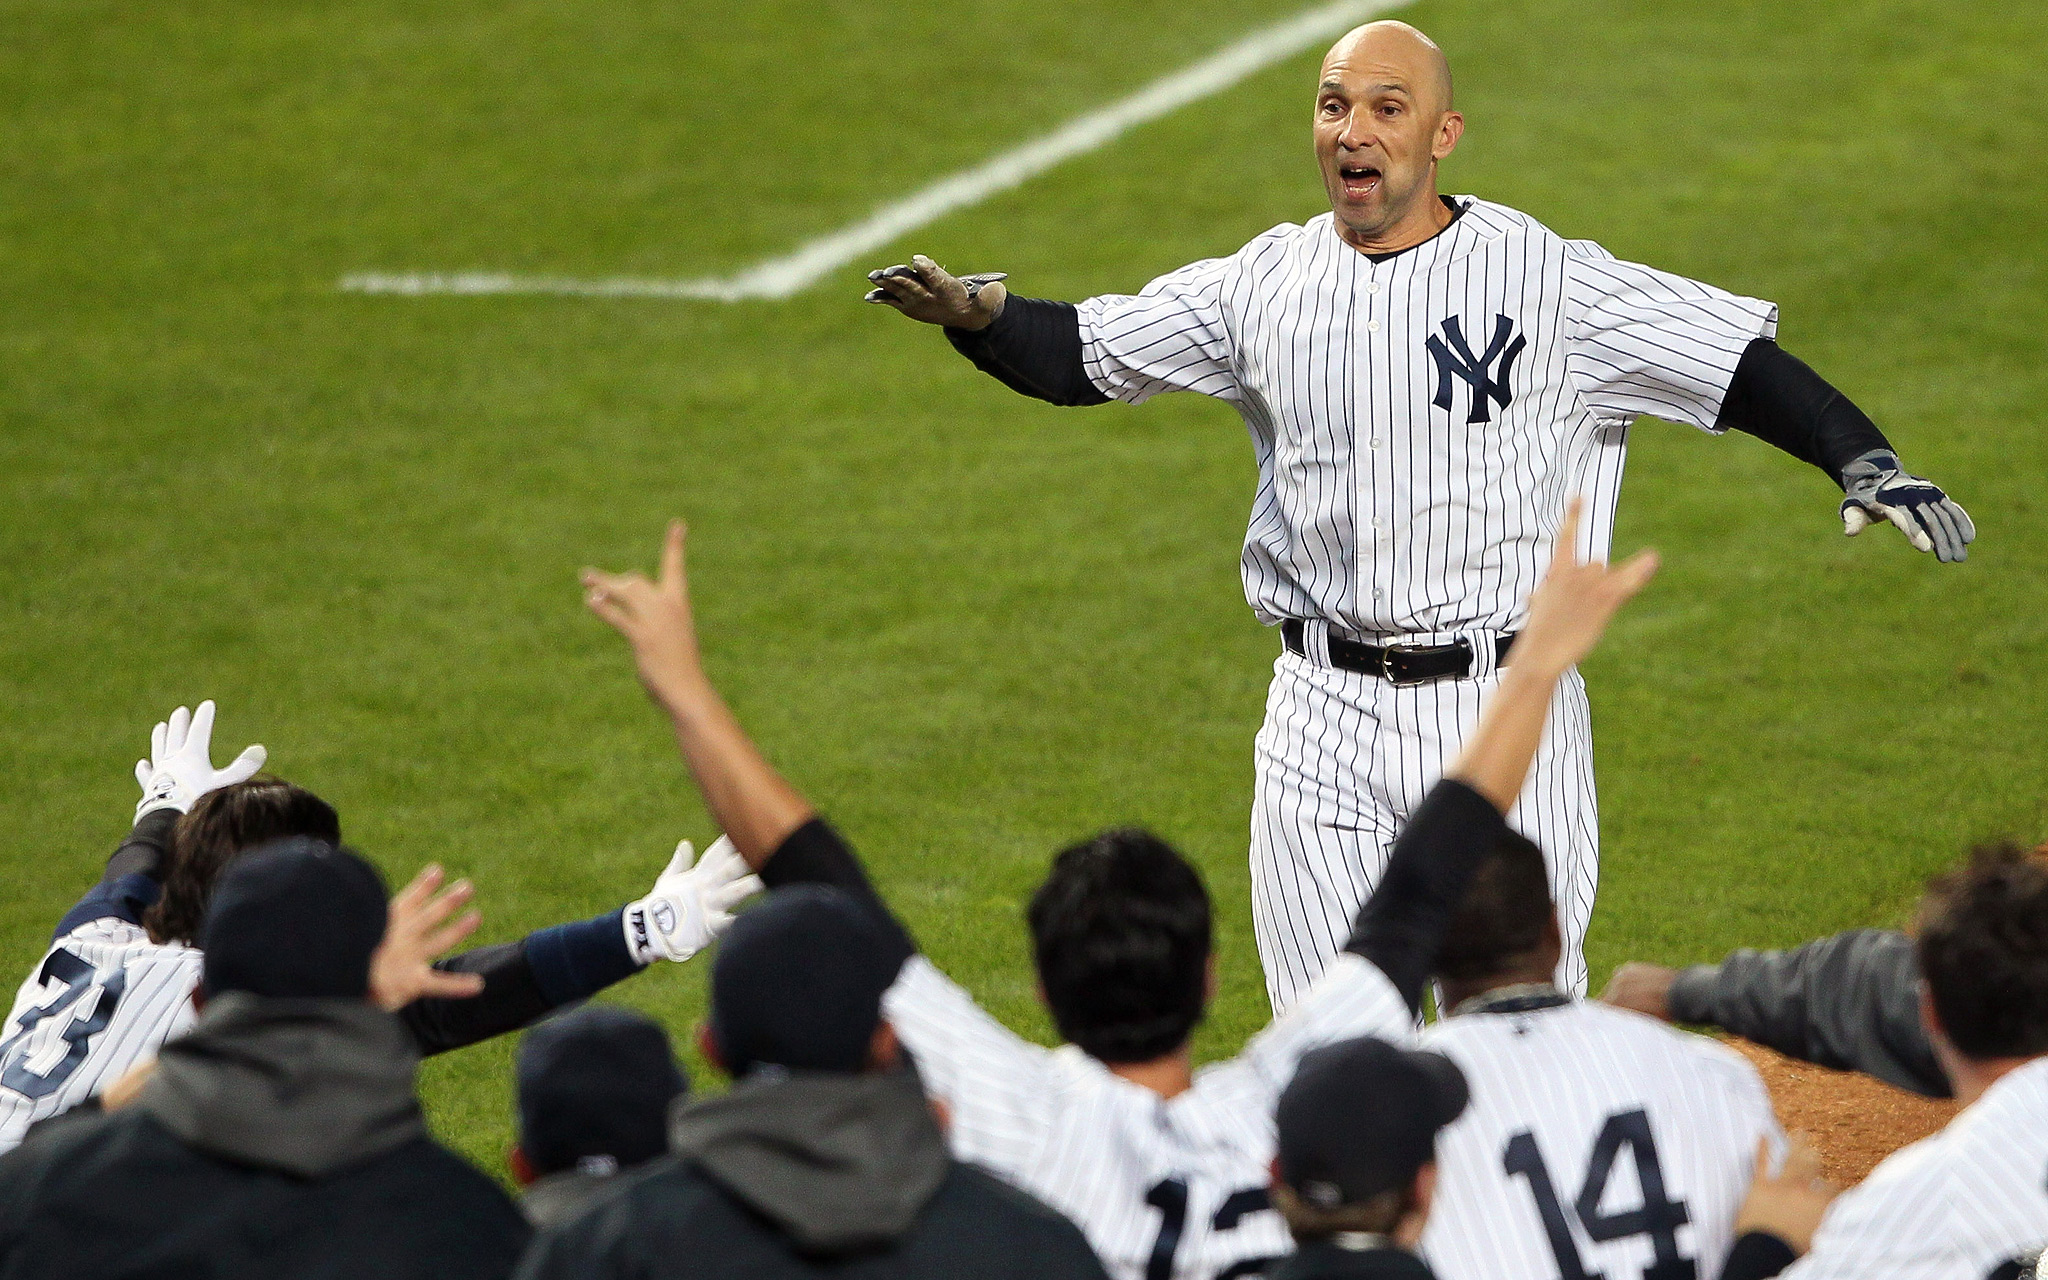 Raul Ibanez Celebration